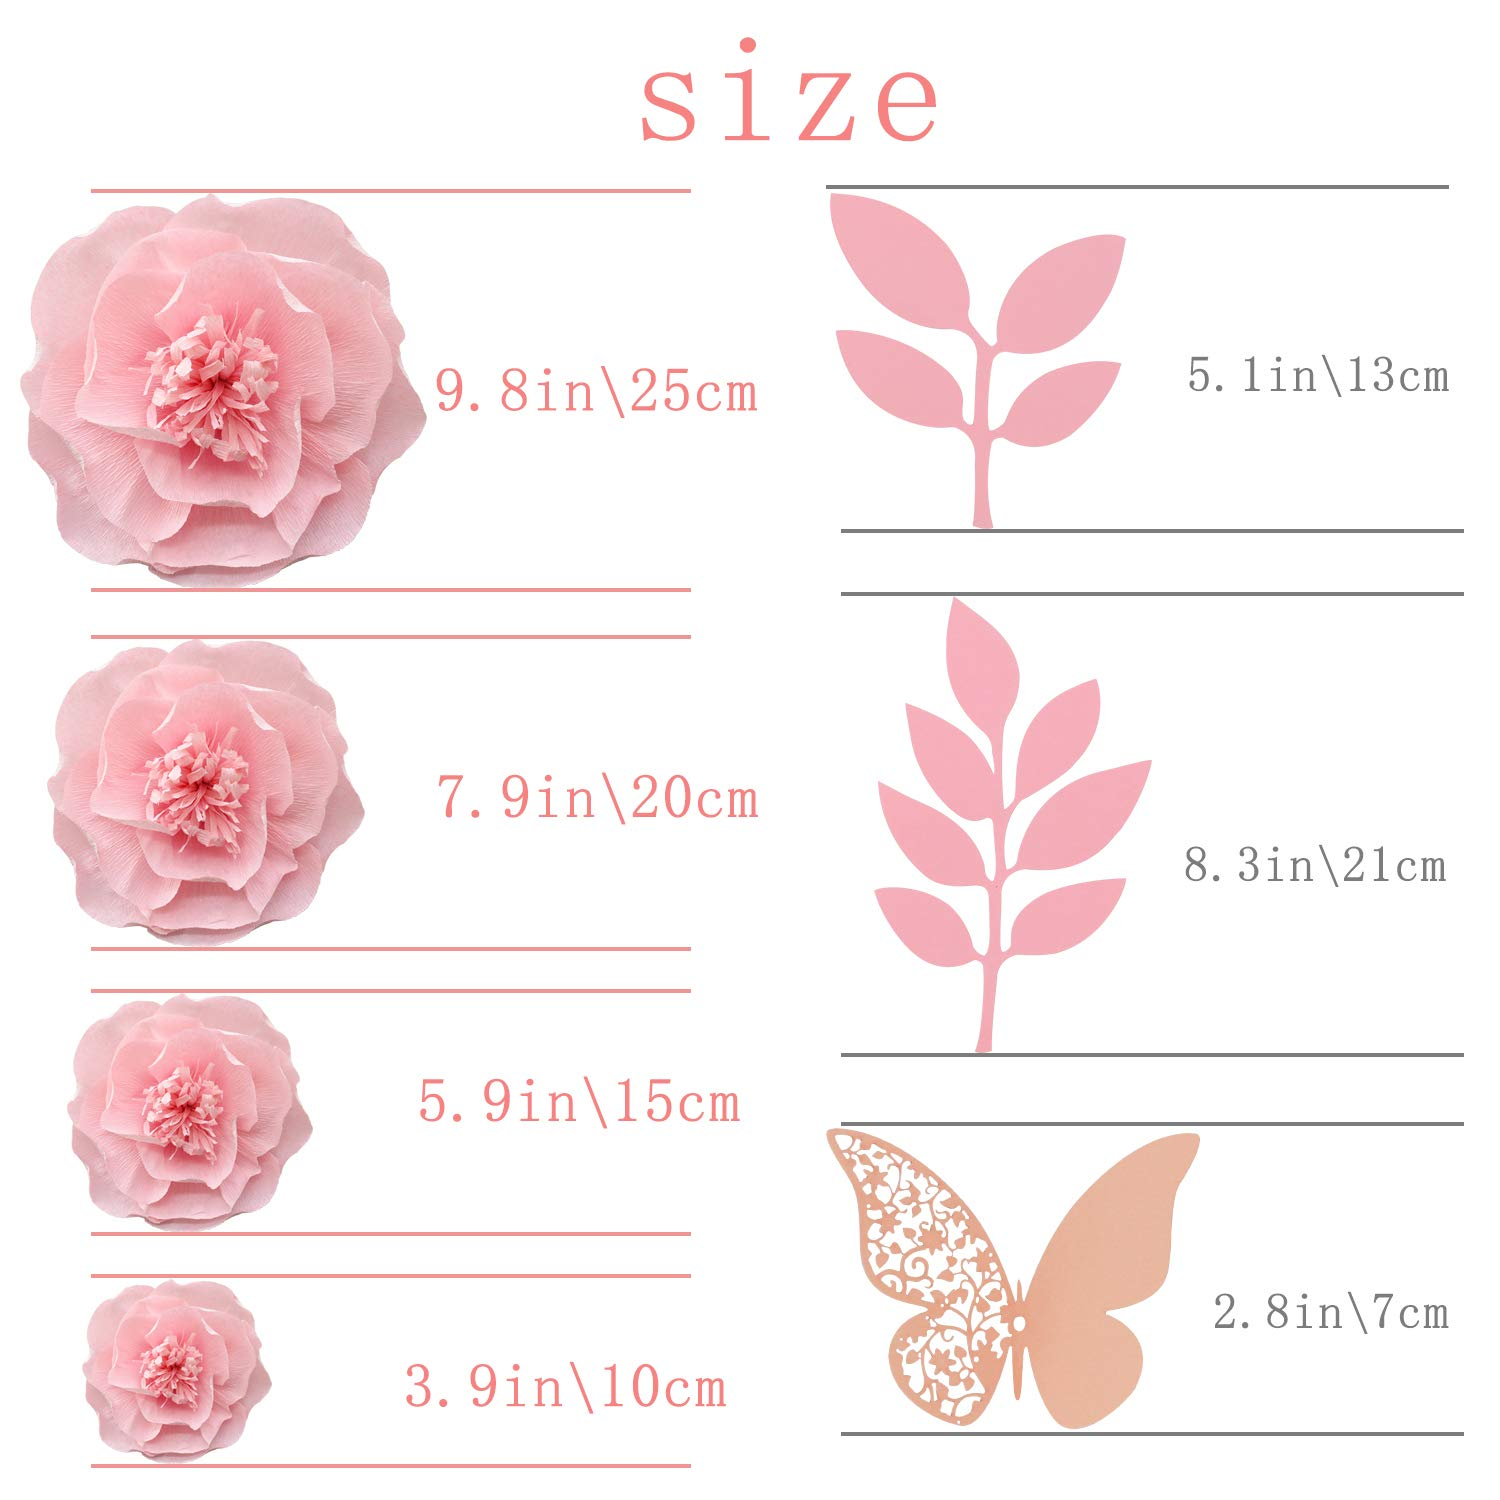 JulyLab Tissue Paper Flower Pink White Set of 13 Craft Crepe Wall Decor DIY Giant Decoration for Wall Baby Nursery Wedding Backdrop Bridal Shower Centerpiece Monogram